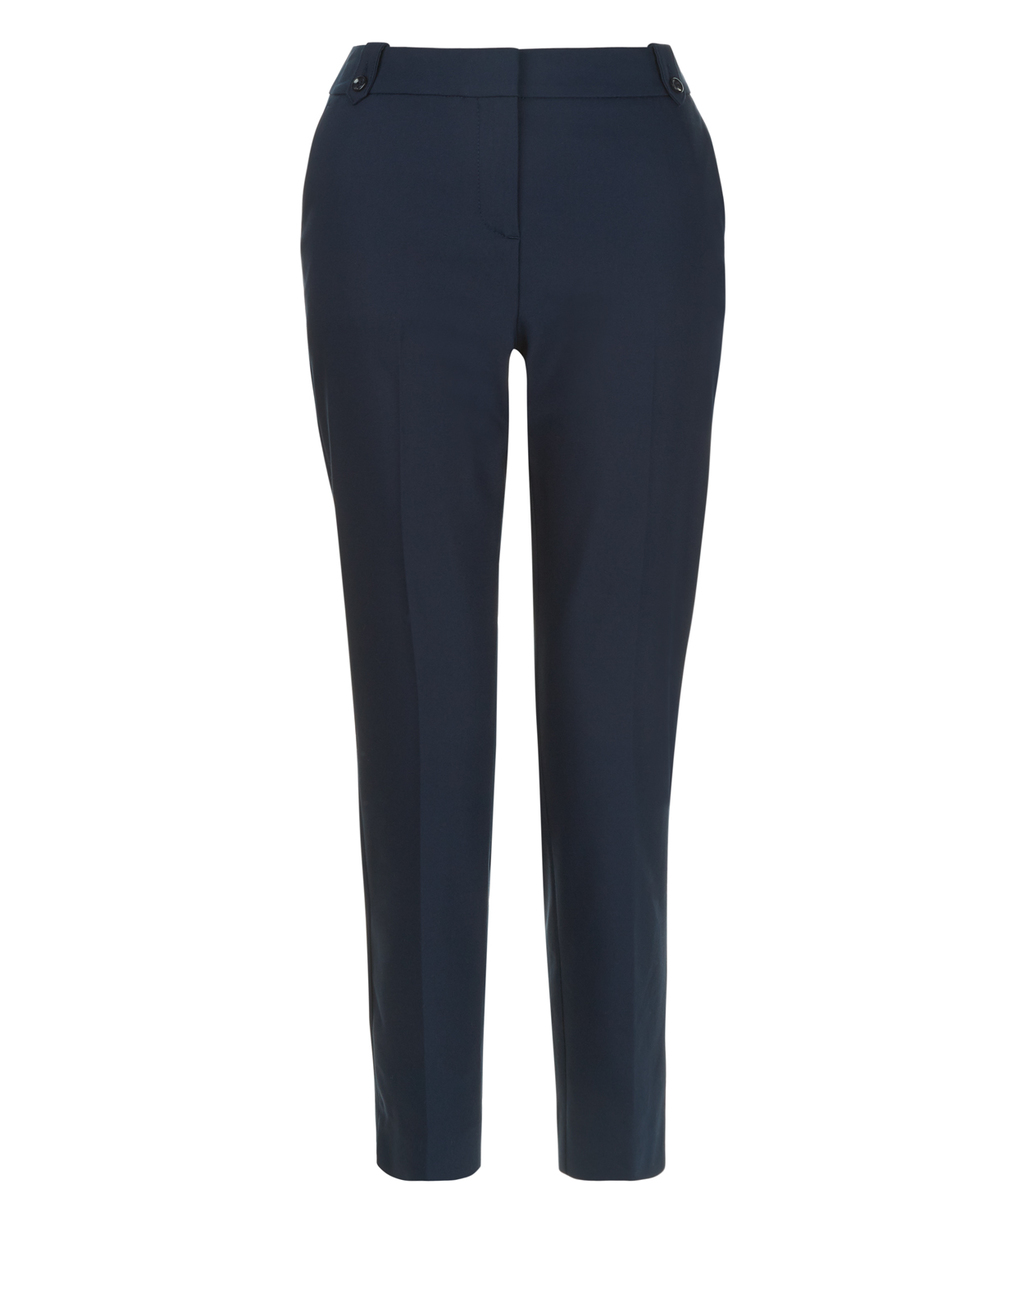 Bonnie Crop Trouser - length: standard; pattern: plain; waist: high rise; predominant colour: navy; occasions: work; fibres: polyester/polyamide - 100%; fit: slim leg; pattern type: fabric; texture group: other - light to midweight; style: standard; wardrobe: basic; season: a/w 2016